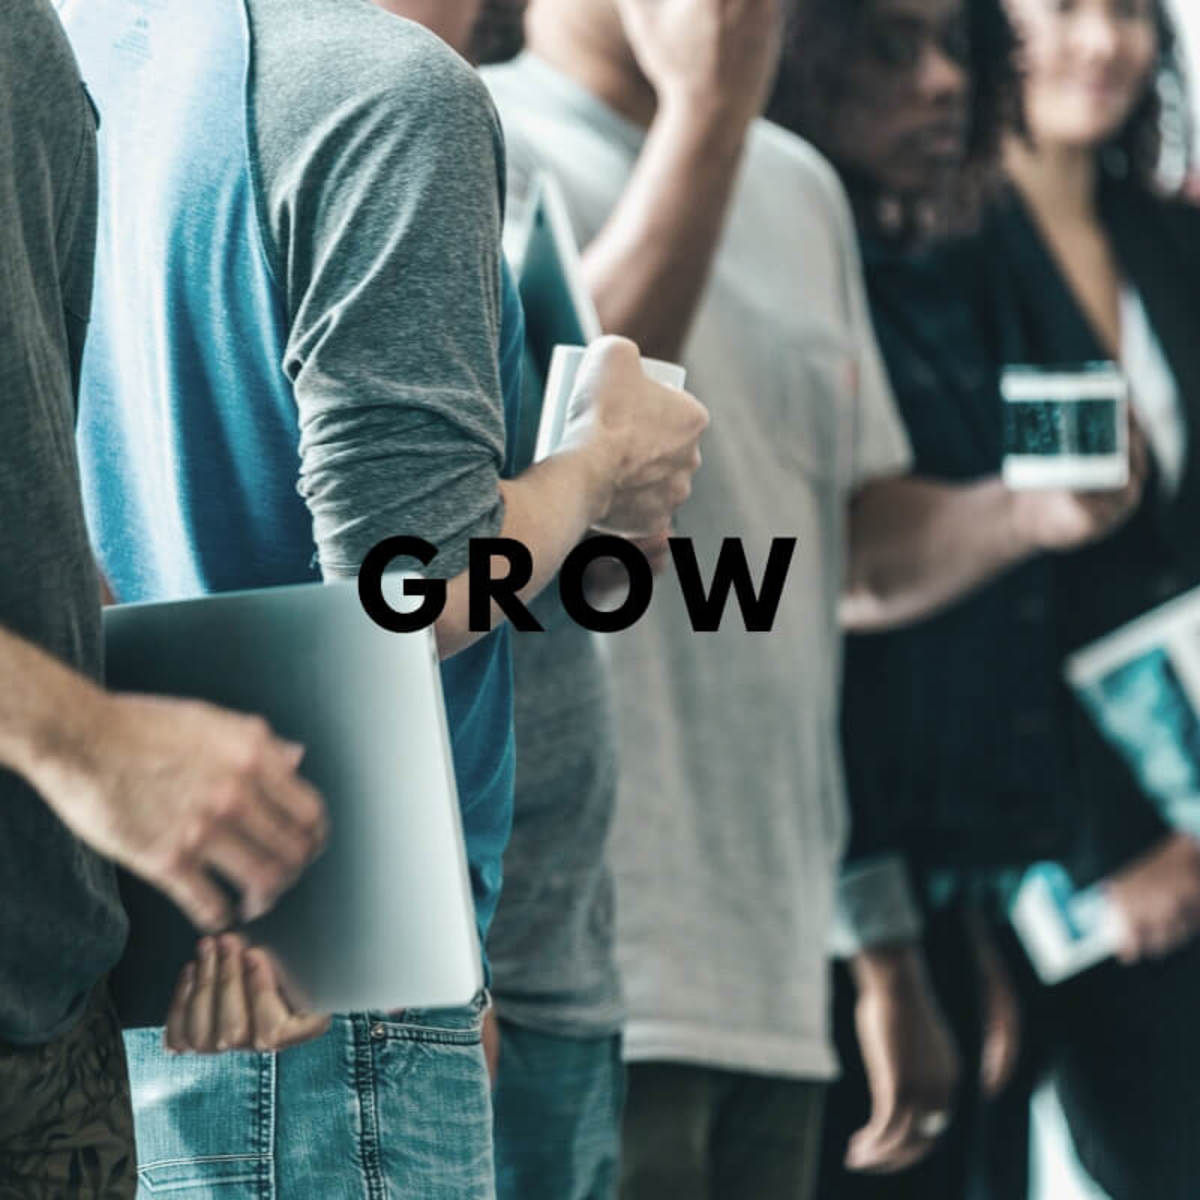 Learn to grow with the knowledge workers and capitalize on information.